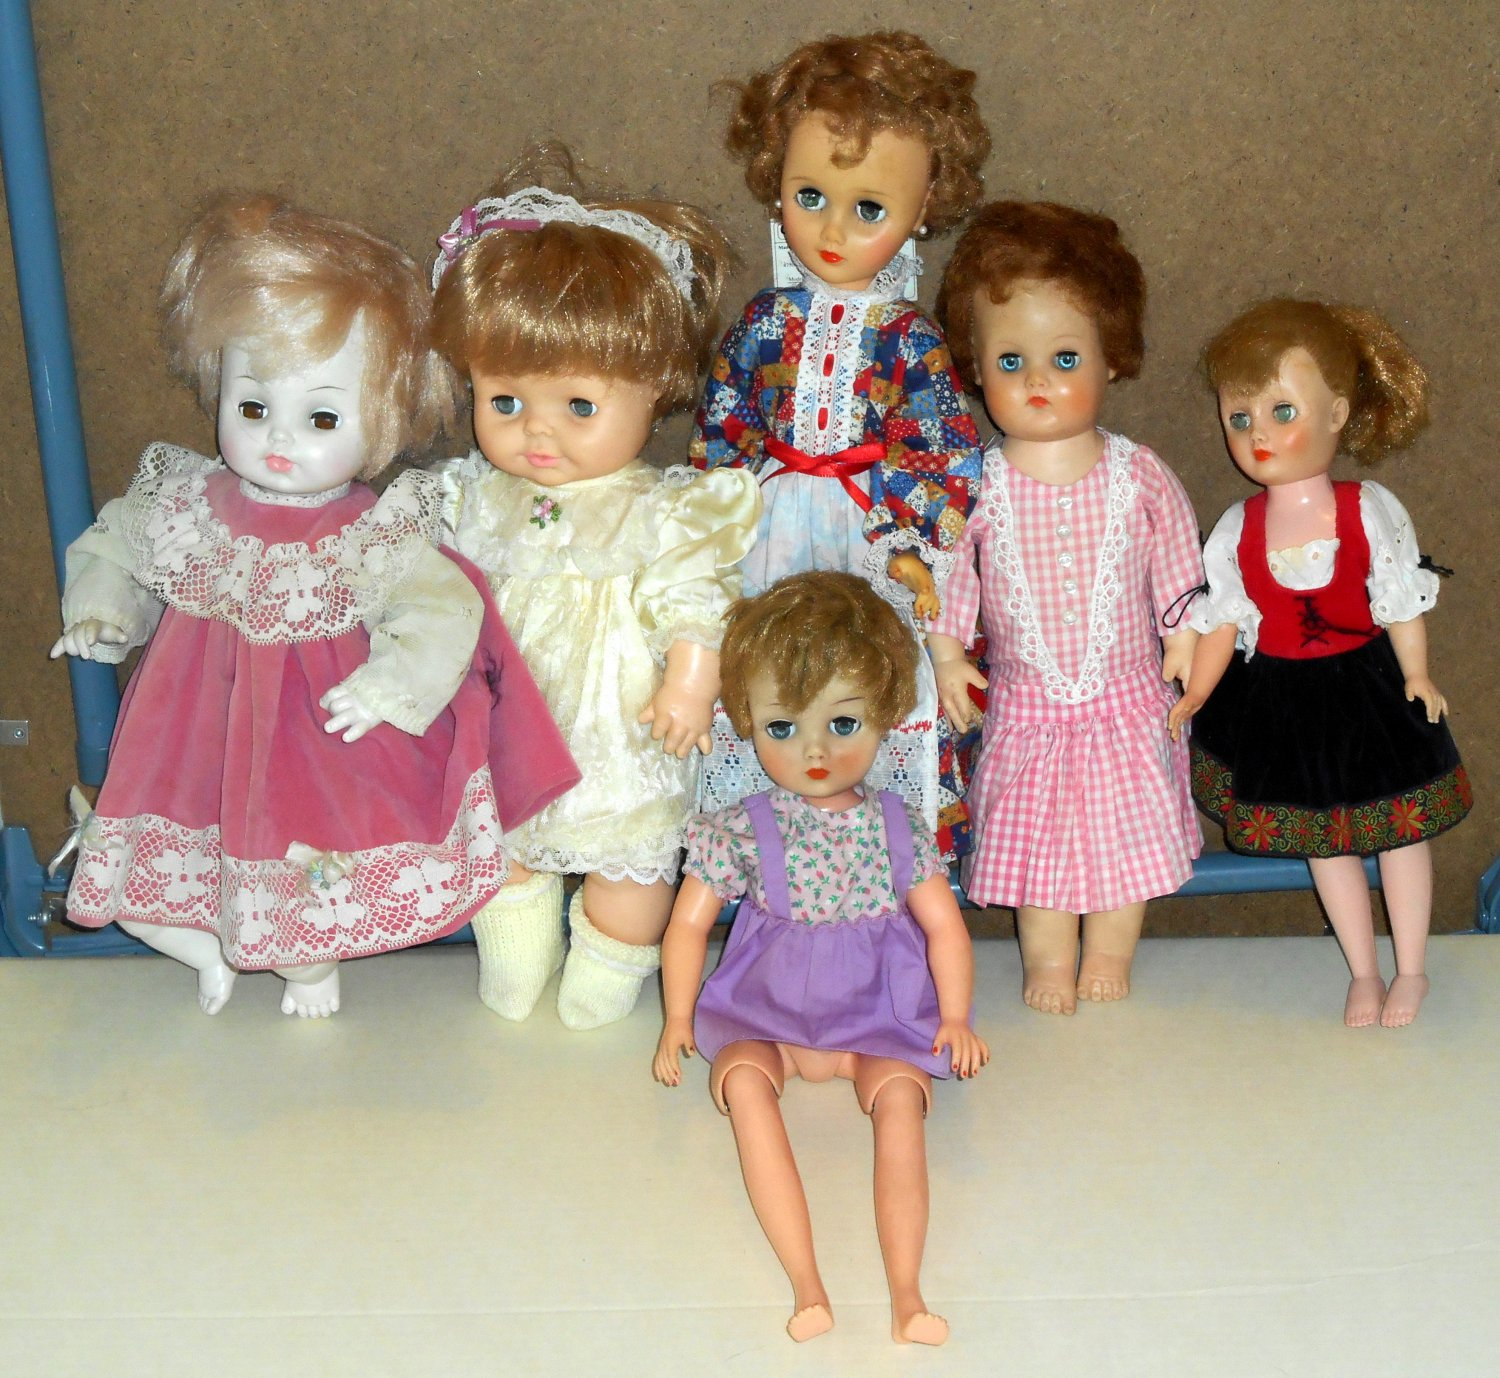 Vintage Baby Doll Lot of 6 Horsman Sleepy Eyes Walking Hard Soft Body Pale 14 to 18 Inch